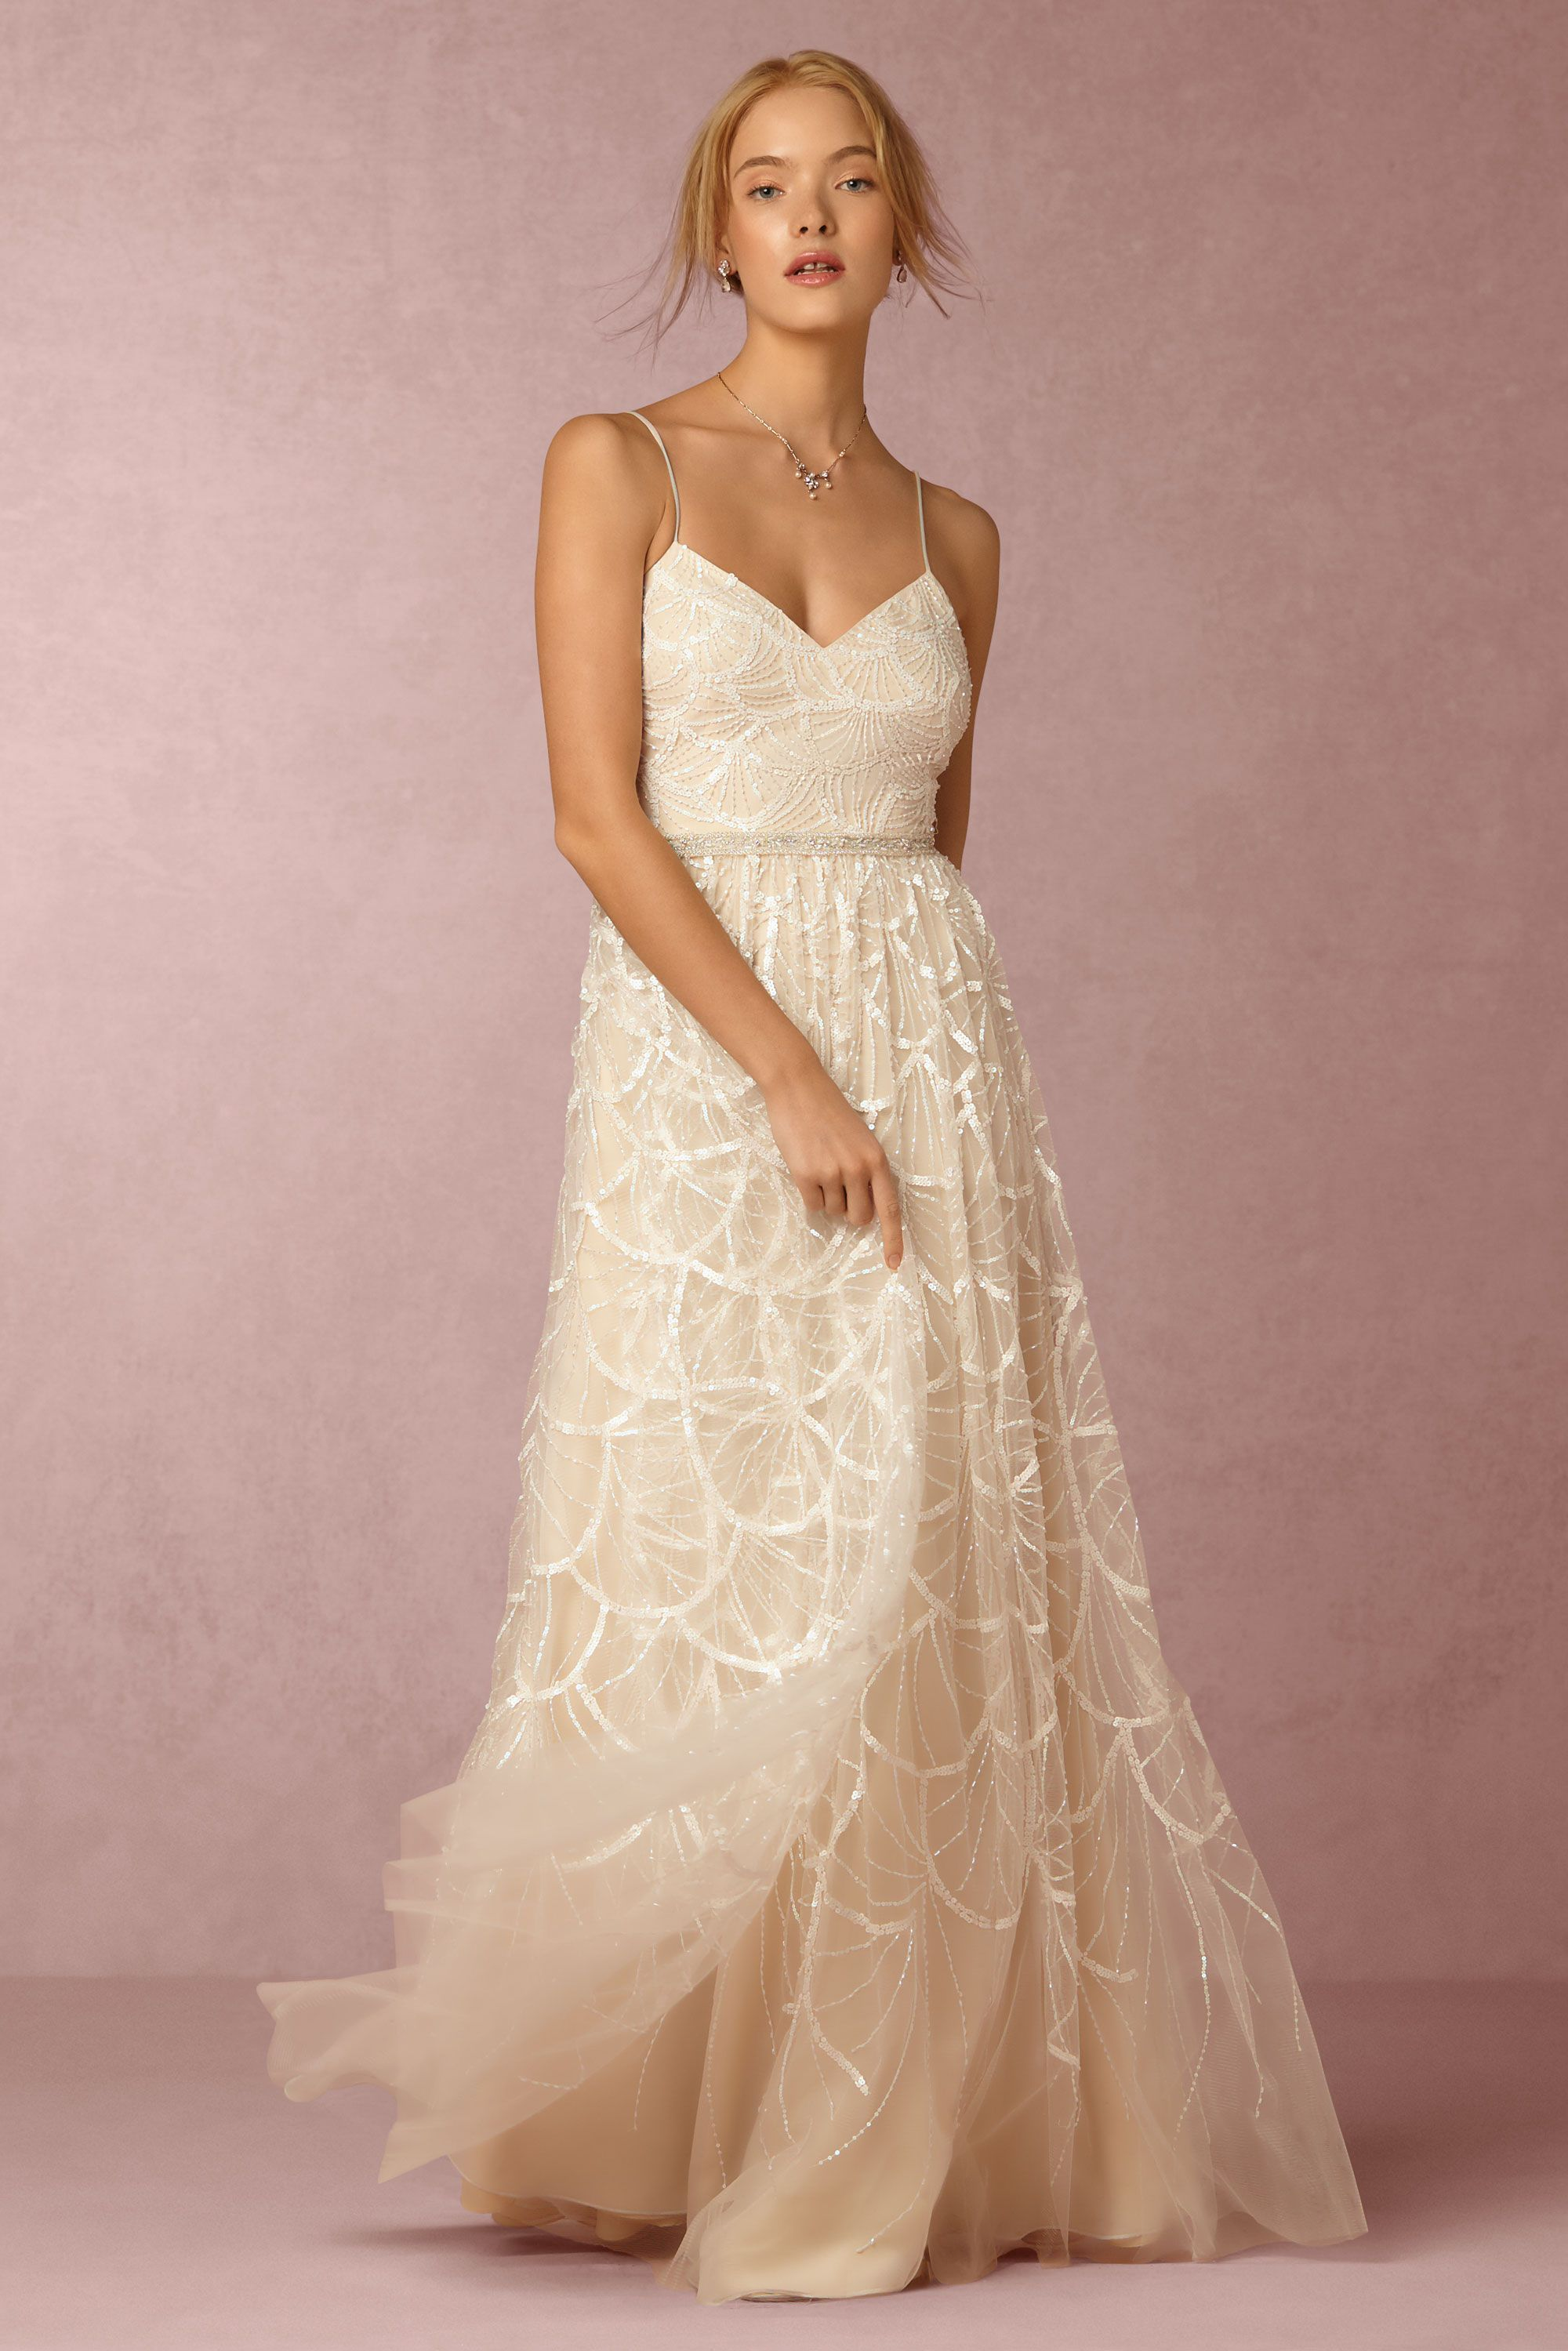 Gorgeous wedding dress love it so ethereal and dreamy noivas